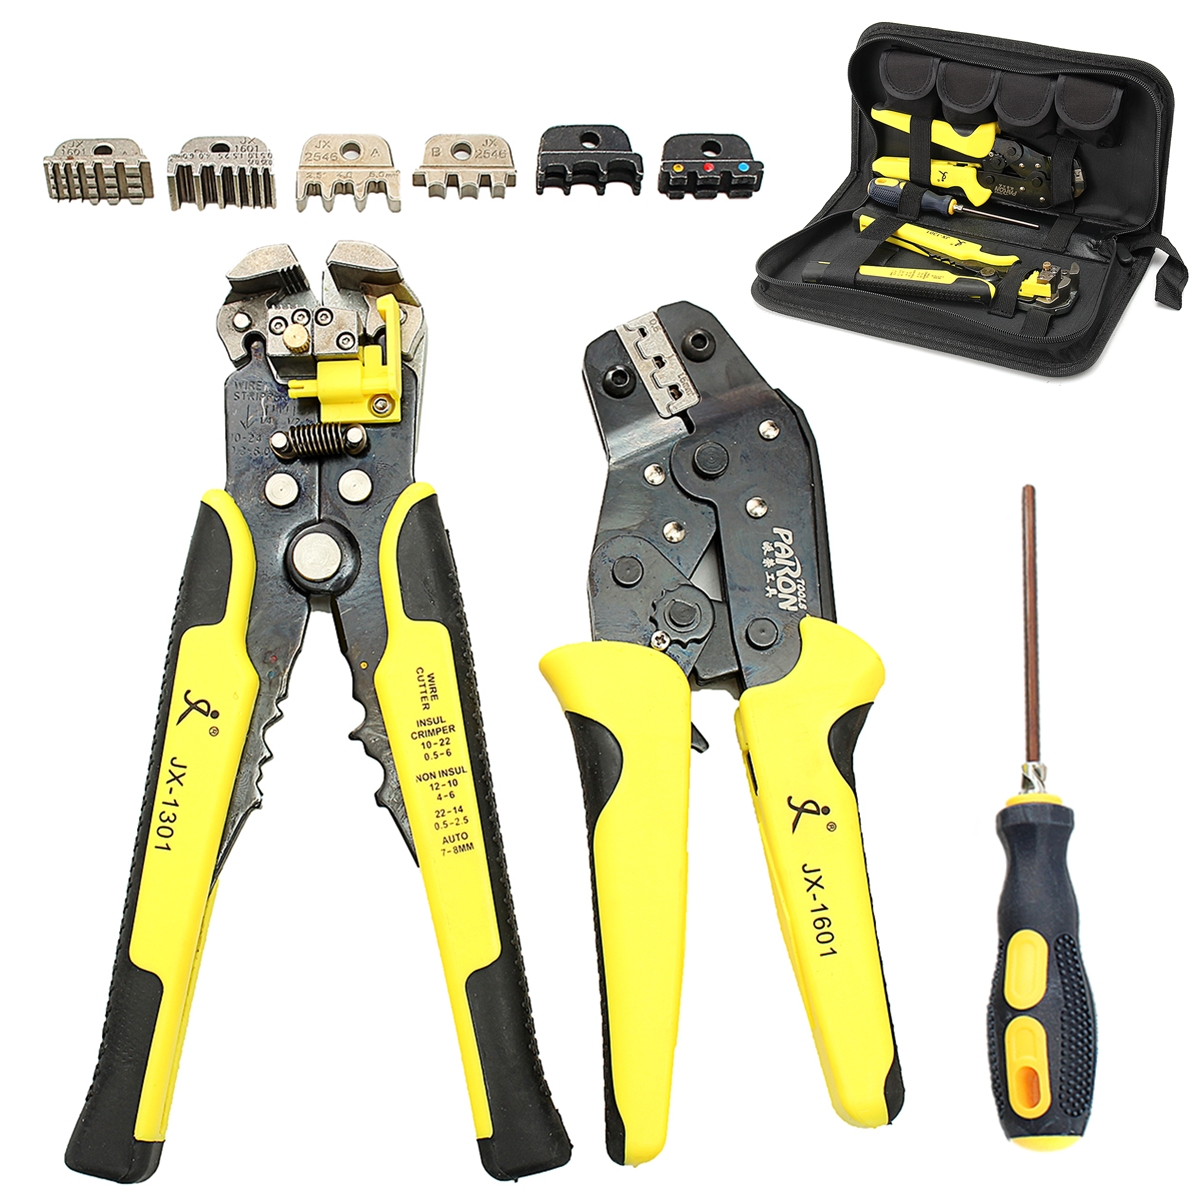 JX-D4301 4in1 Wire Crimpers Engineering Ratcheting Terminal Crimping Pliers Wire Stripper Manganese Steel 4 Interchange Terminal цена